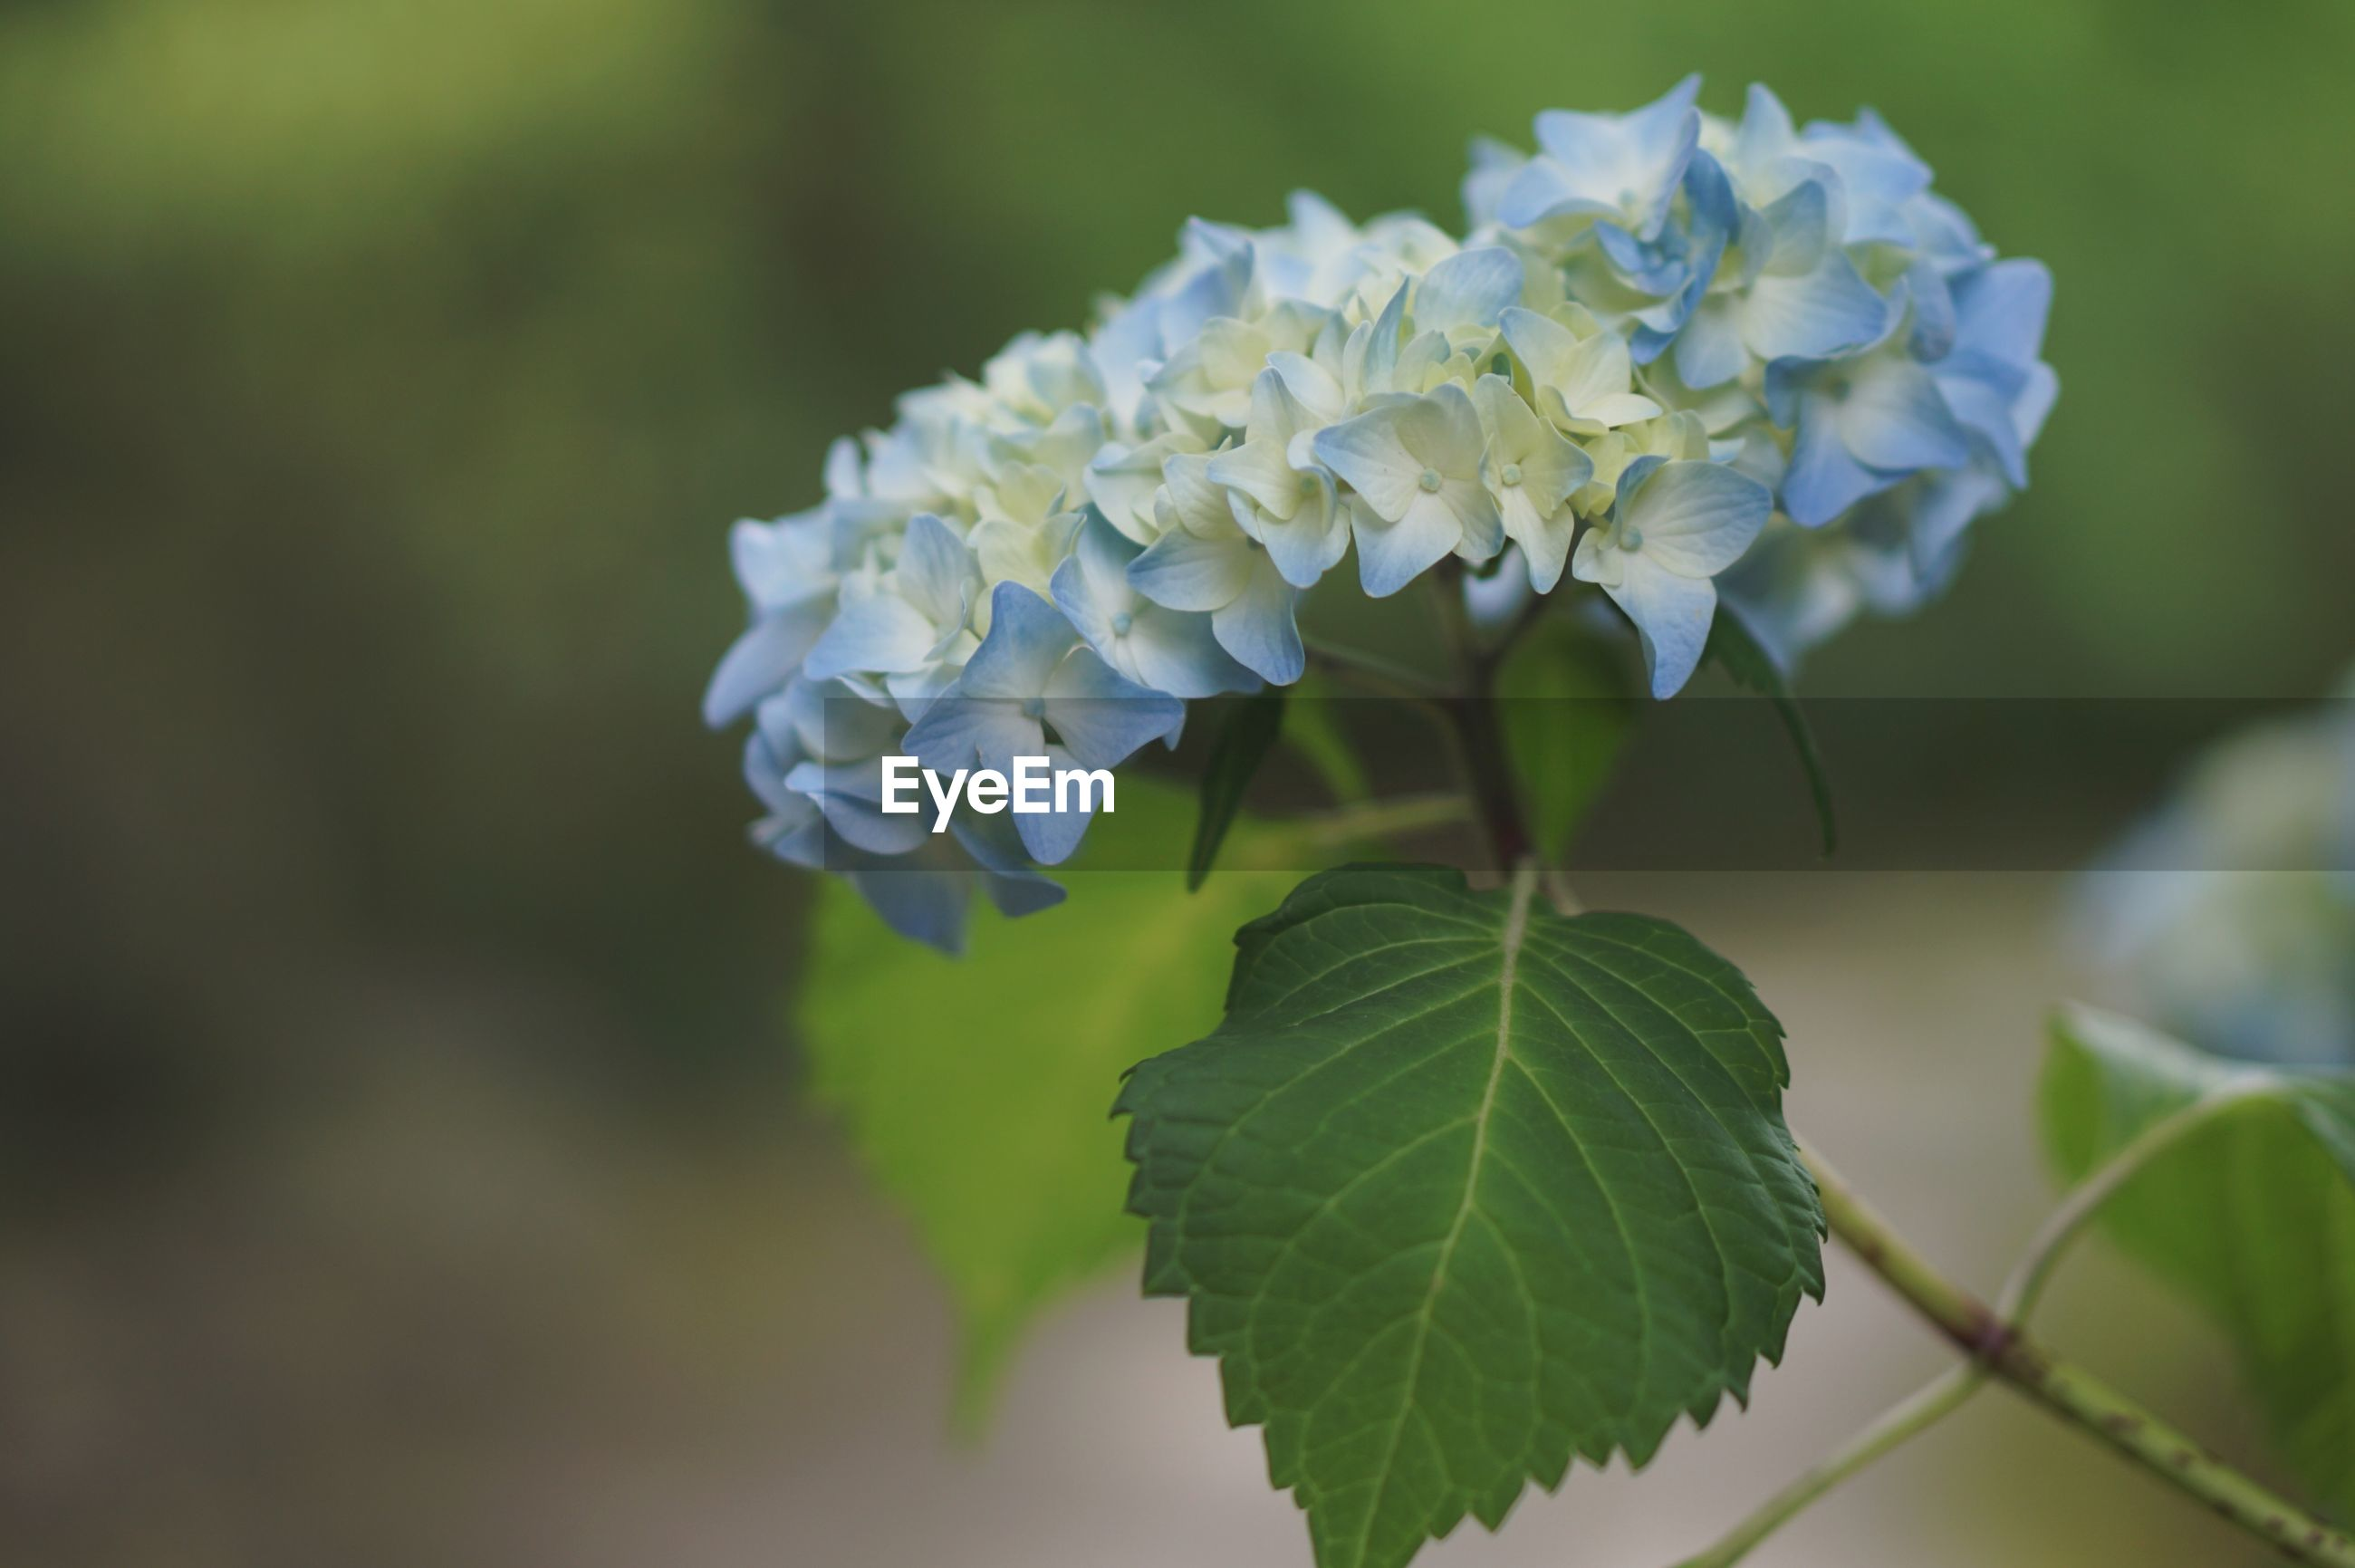 plant, beauty in nature, leaf, flower, flowering plant, plant part, growth, vulnerability, freshness, close-up, fragility, focus on foreground, petal, nature, day, green color, hydrangea, no people, flower head, inflorescence, outdoors, purple, lilac